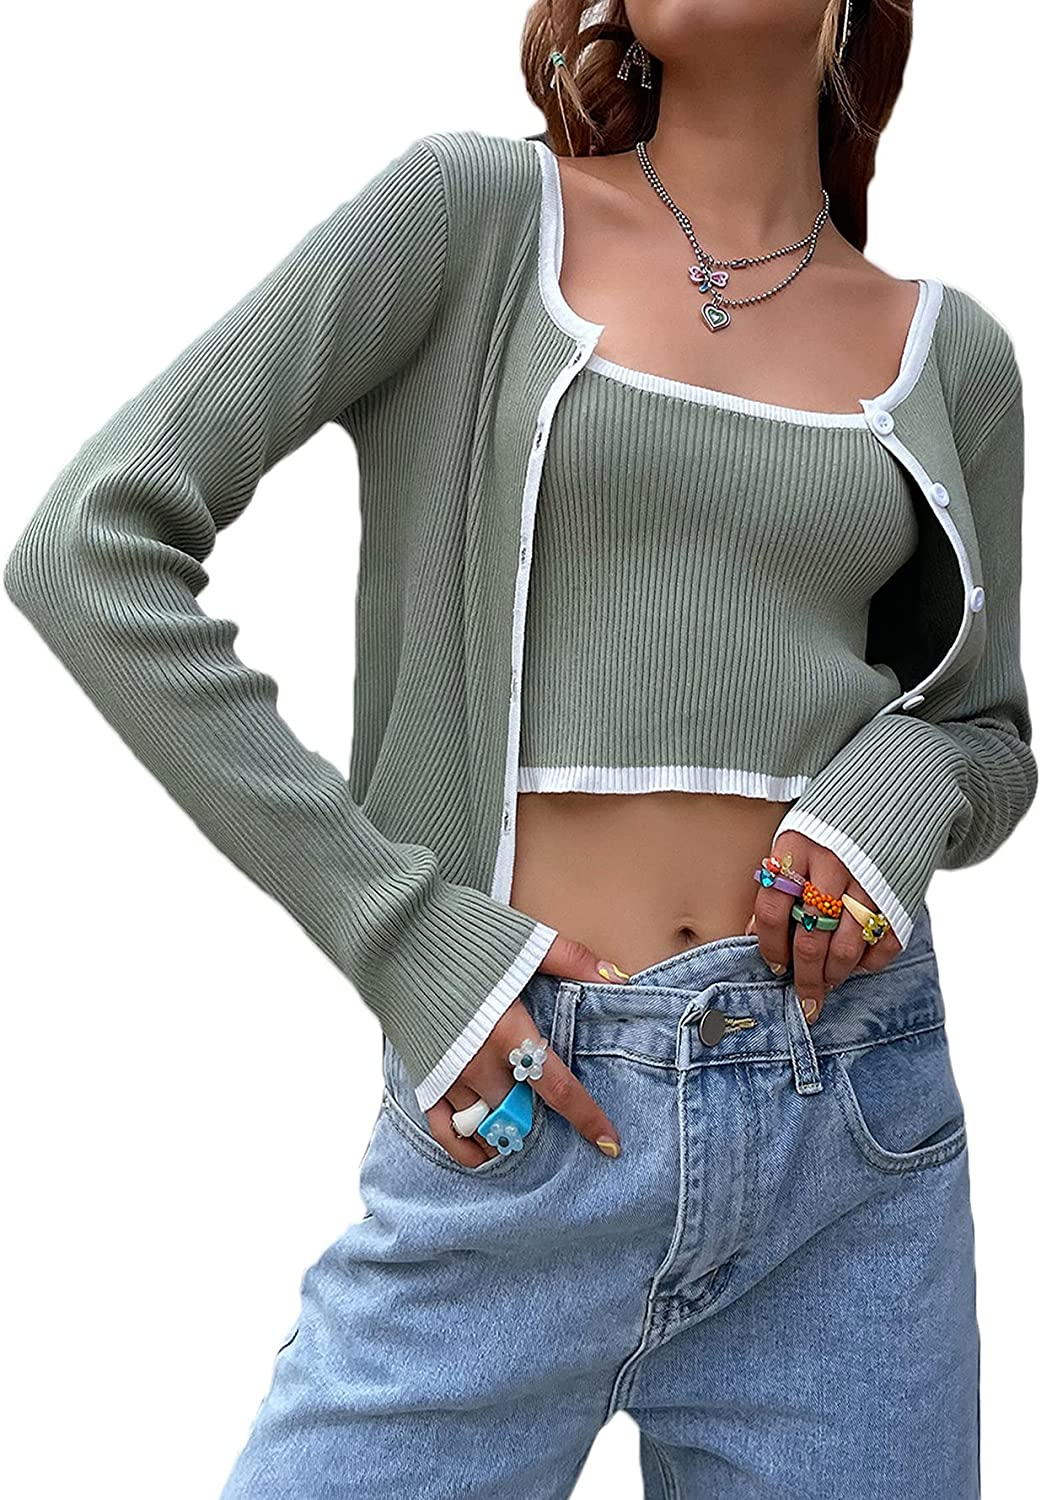 SheIn Women's Long Sleeve Button Rib Knit Cardigan 2 Pieces Pullover Crop Top Sweater Set